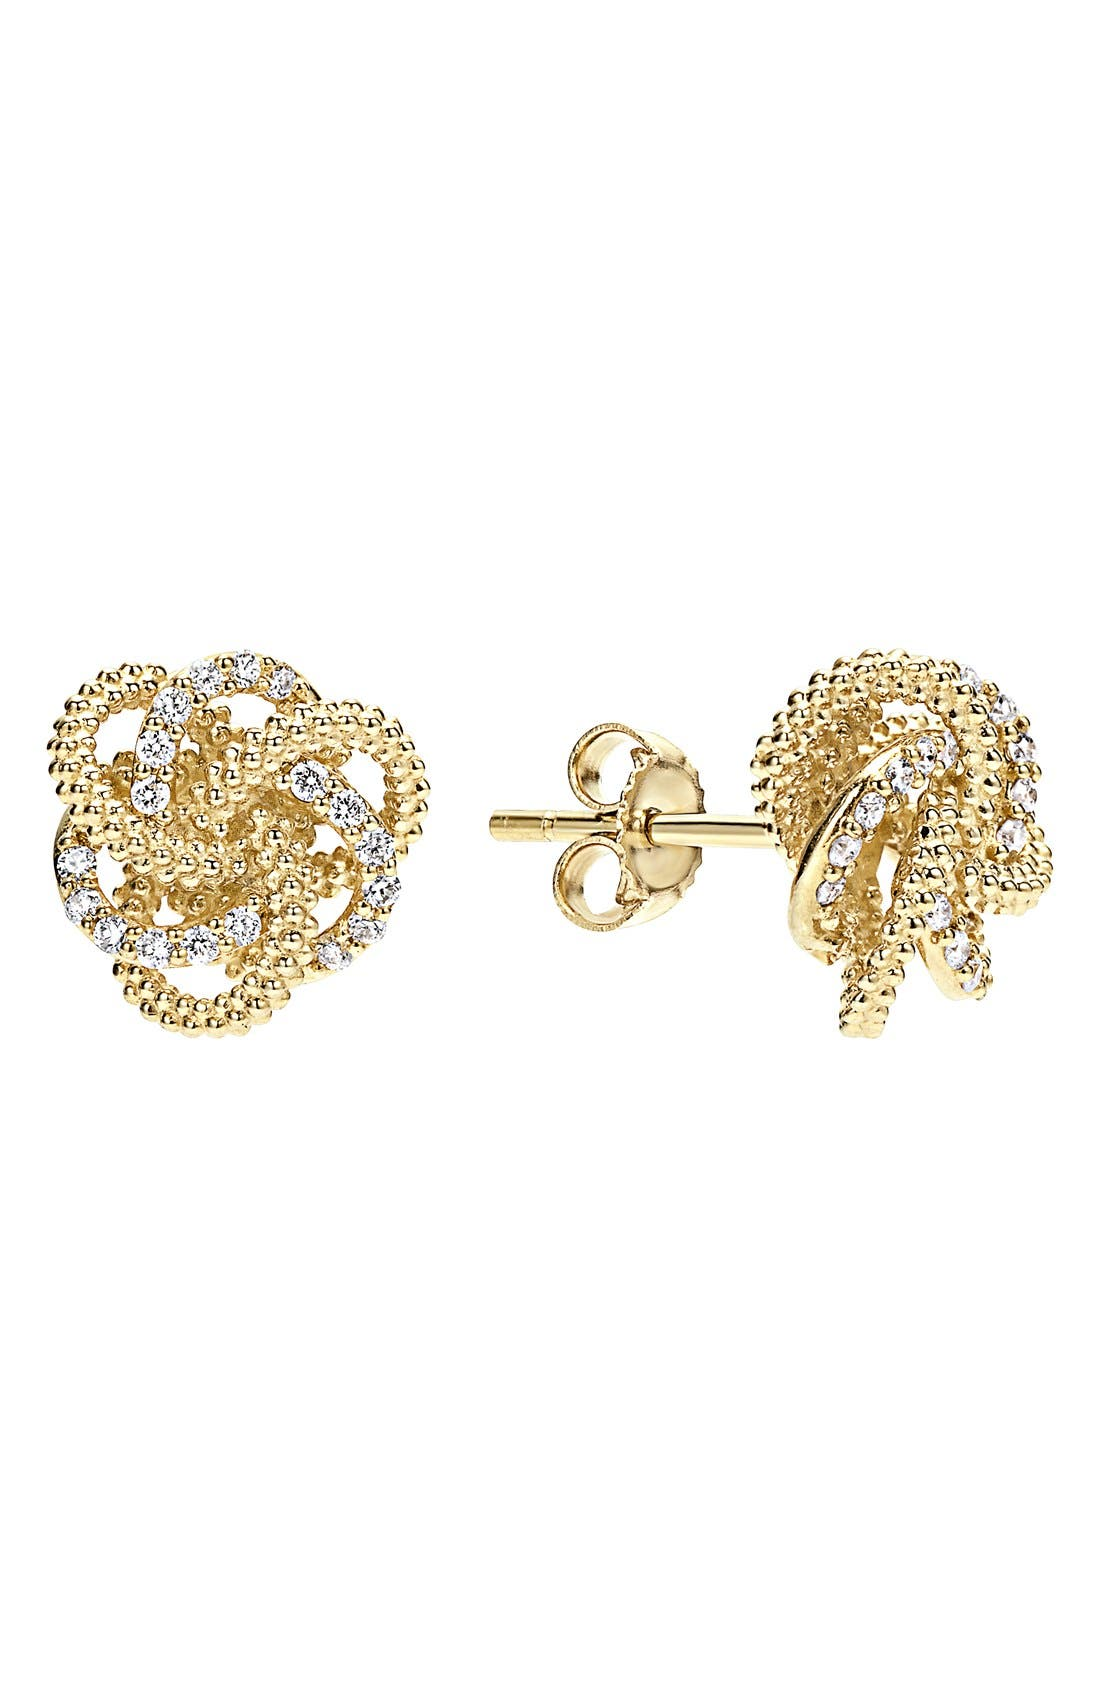 'Love Knot' Diamond Stud Earrings,                         Main,                         color, GOLD